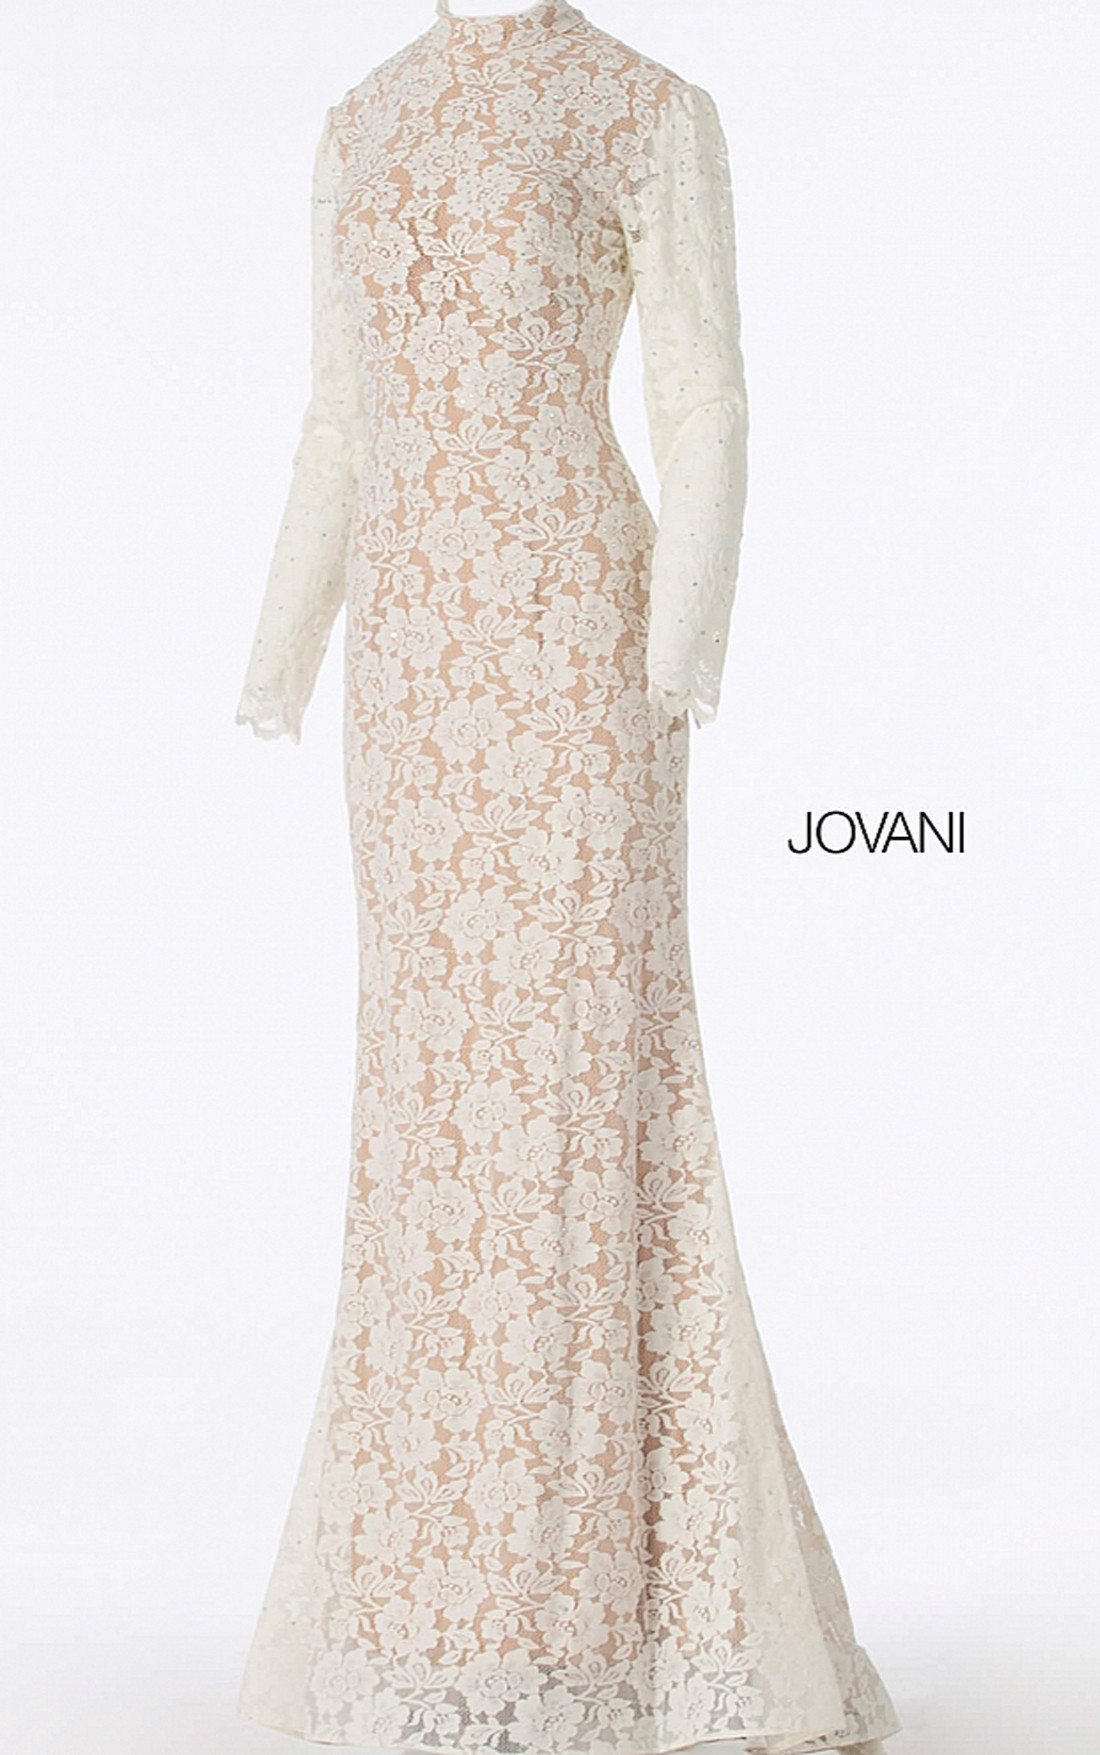 Jovani - Off White Nude Long Sleeve Lace Bridal Dress (63209)